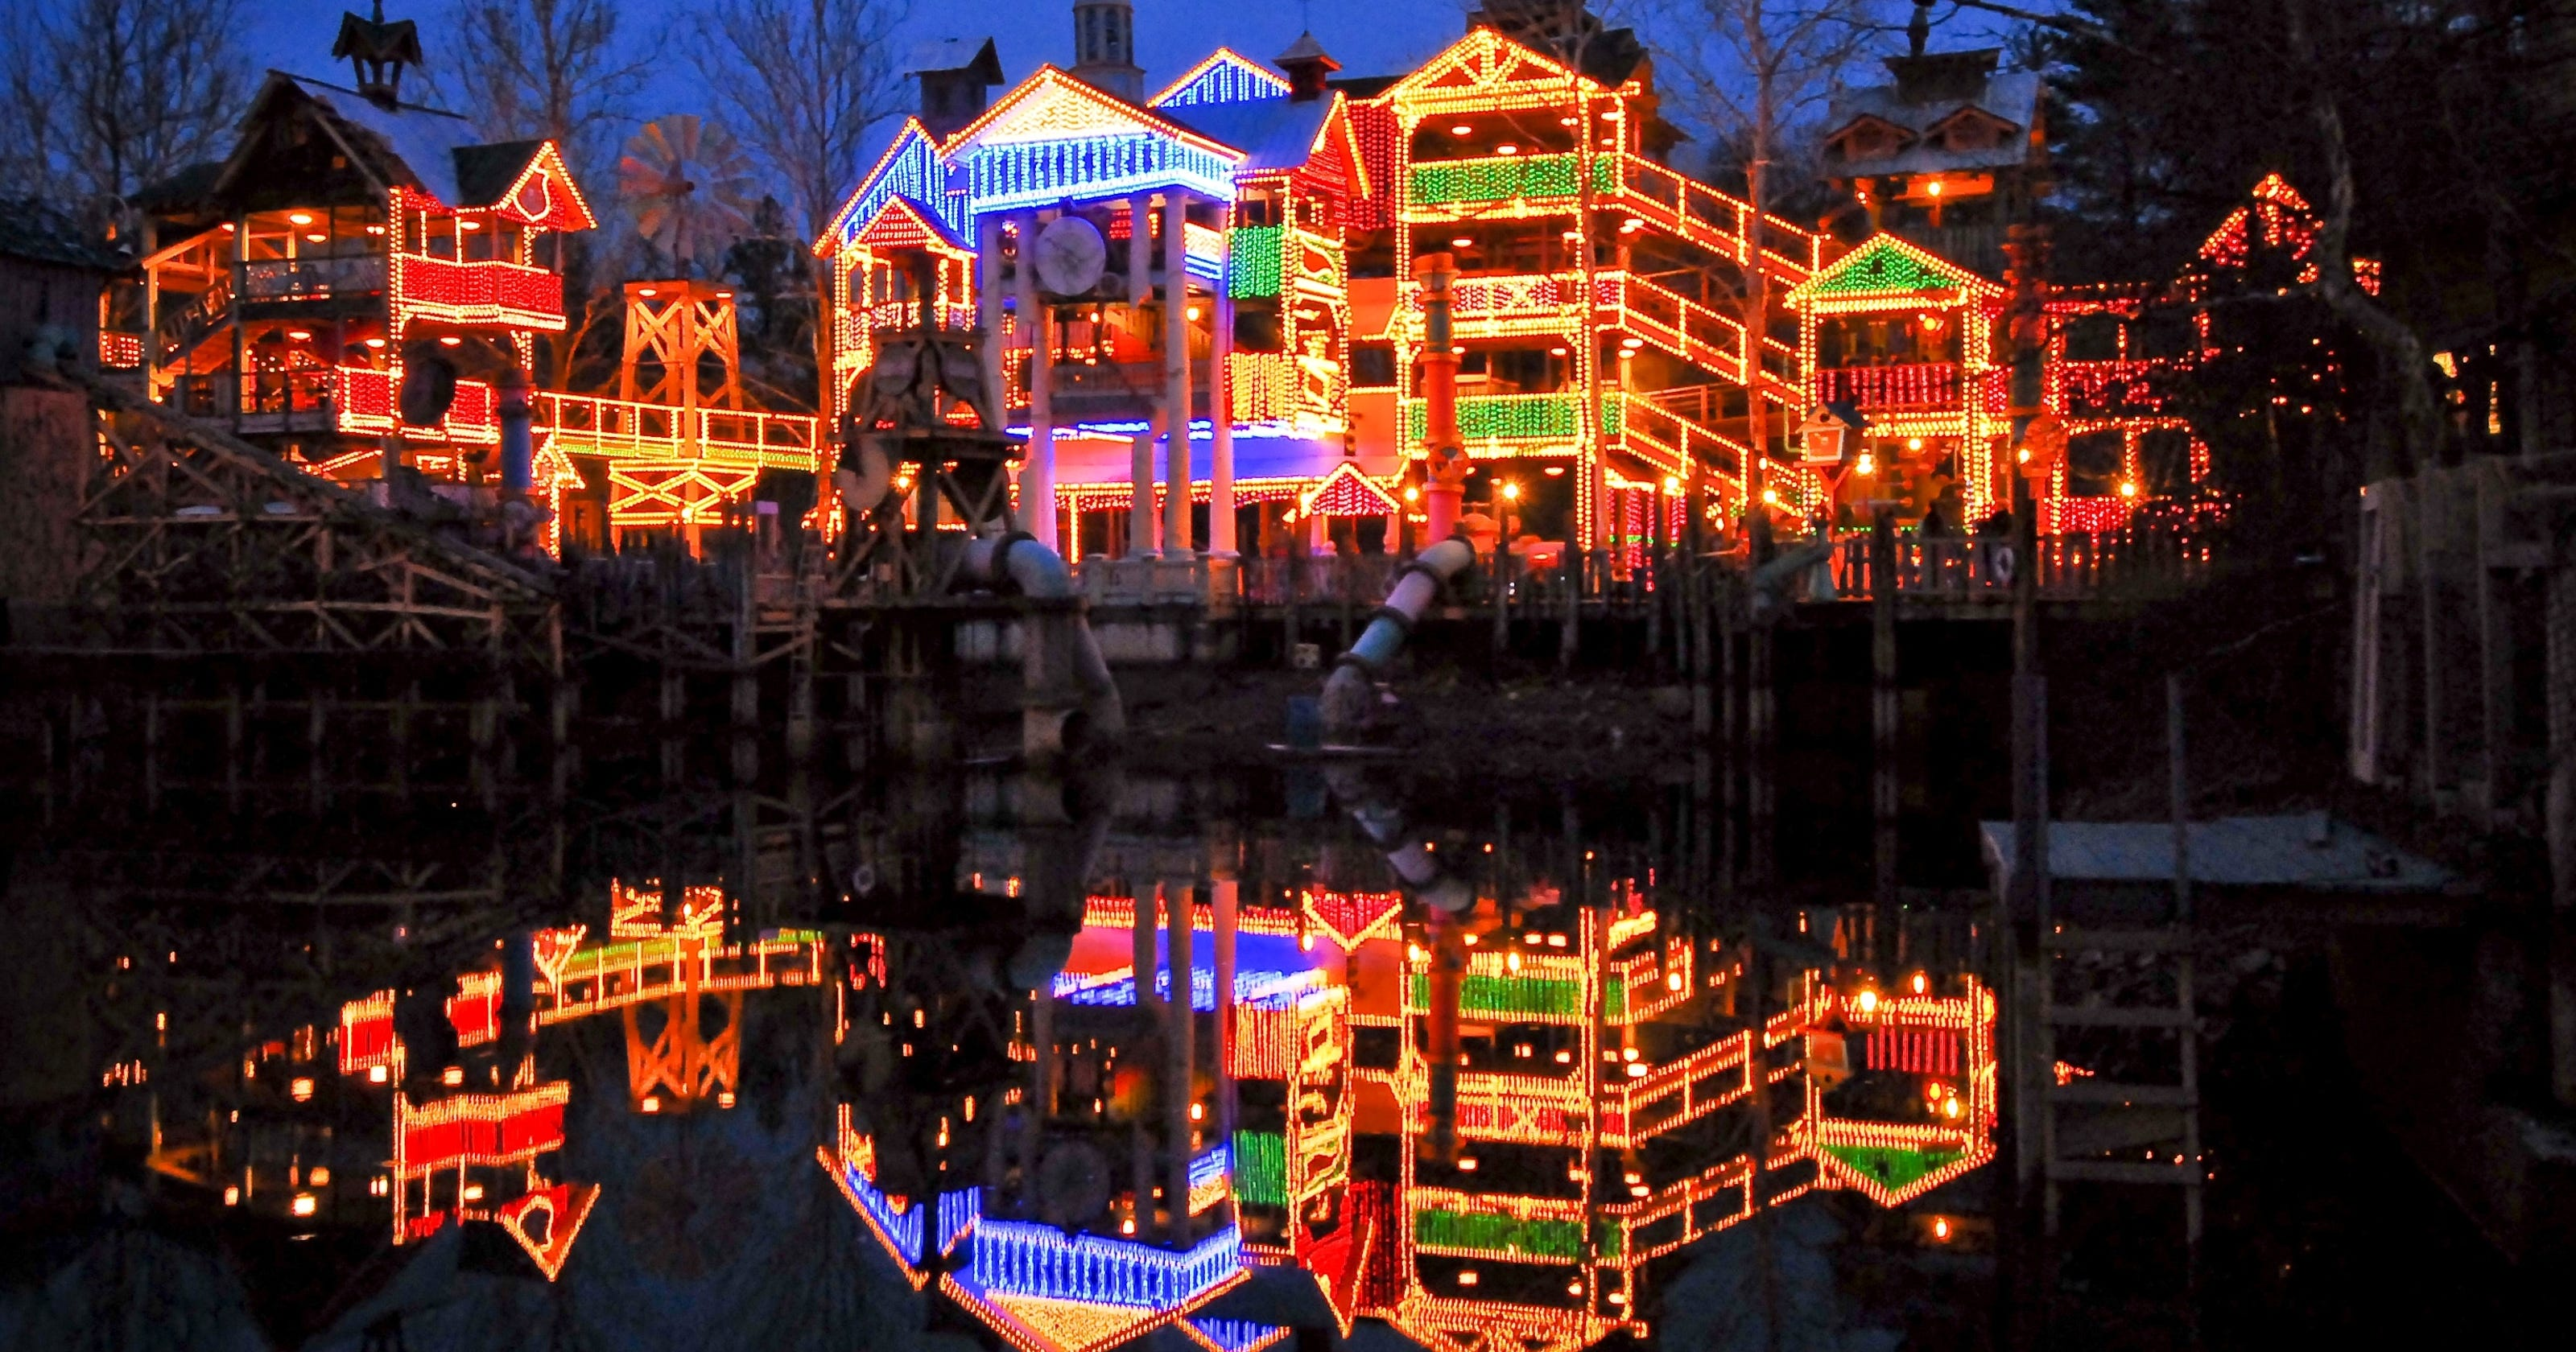 Silver Dollar City Christmas.10 Great Places To Put A Spin On The Christmas Spirit